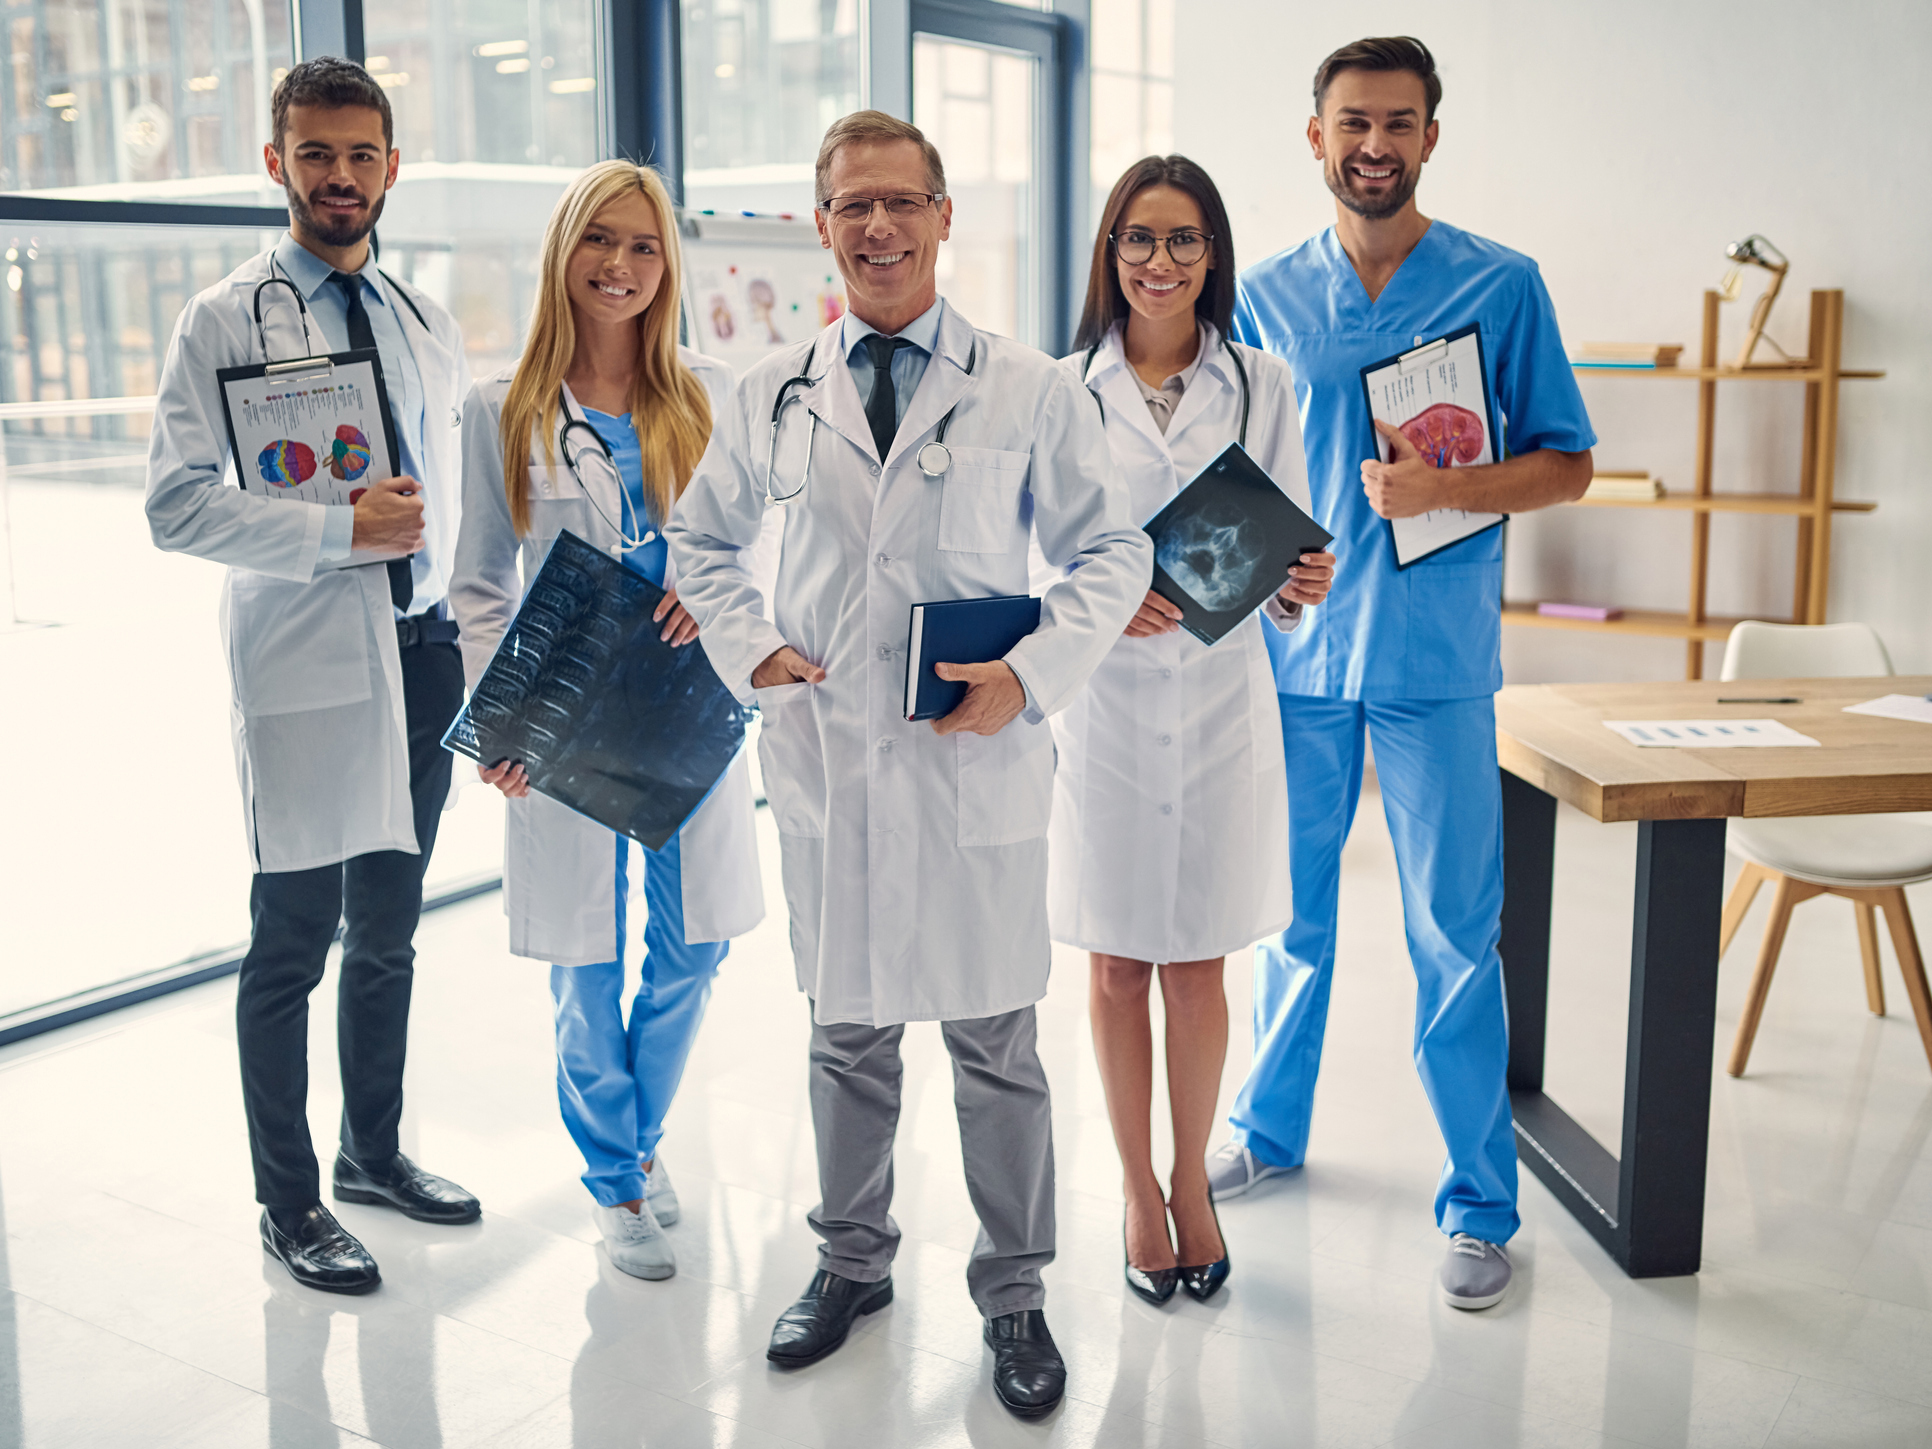 Too many doctors already? Meet your cardiometabologist